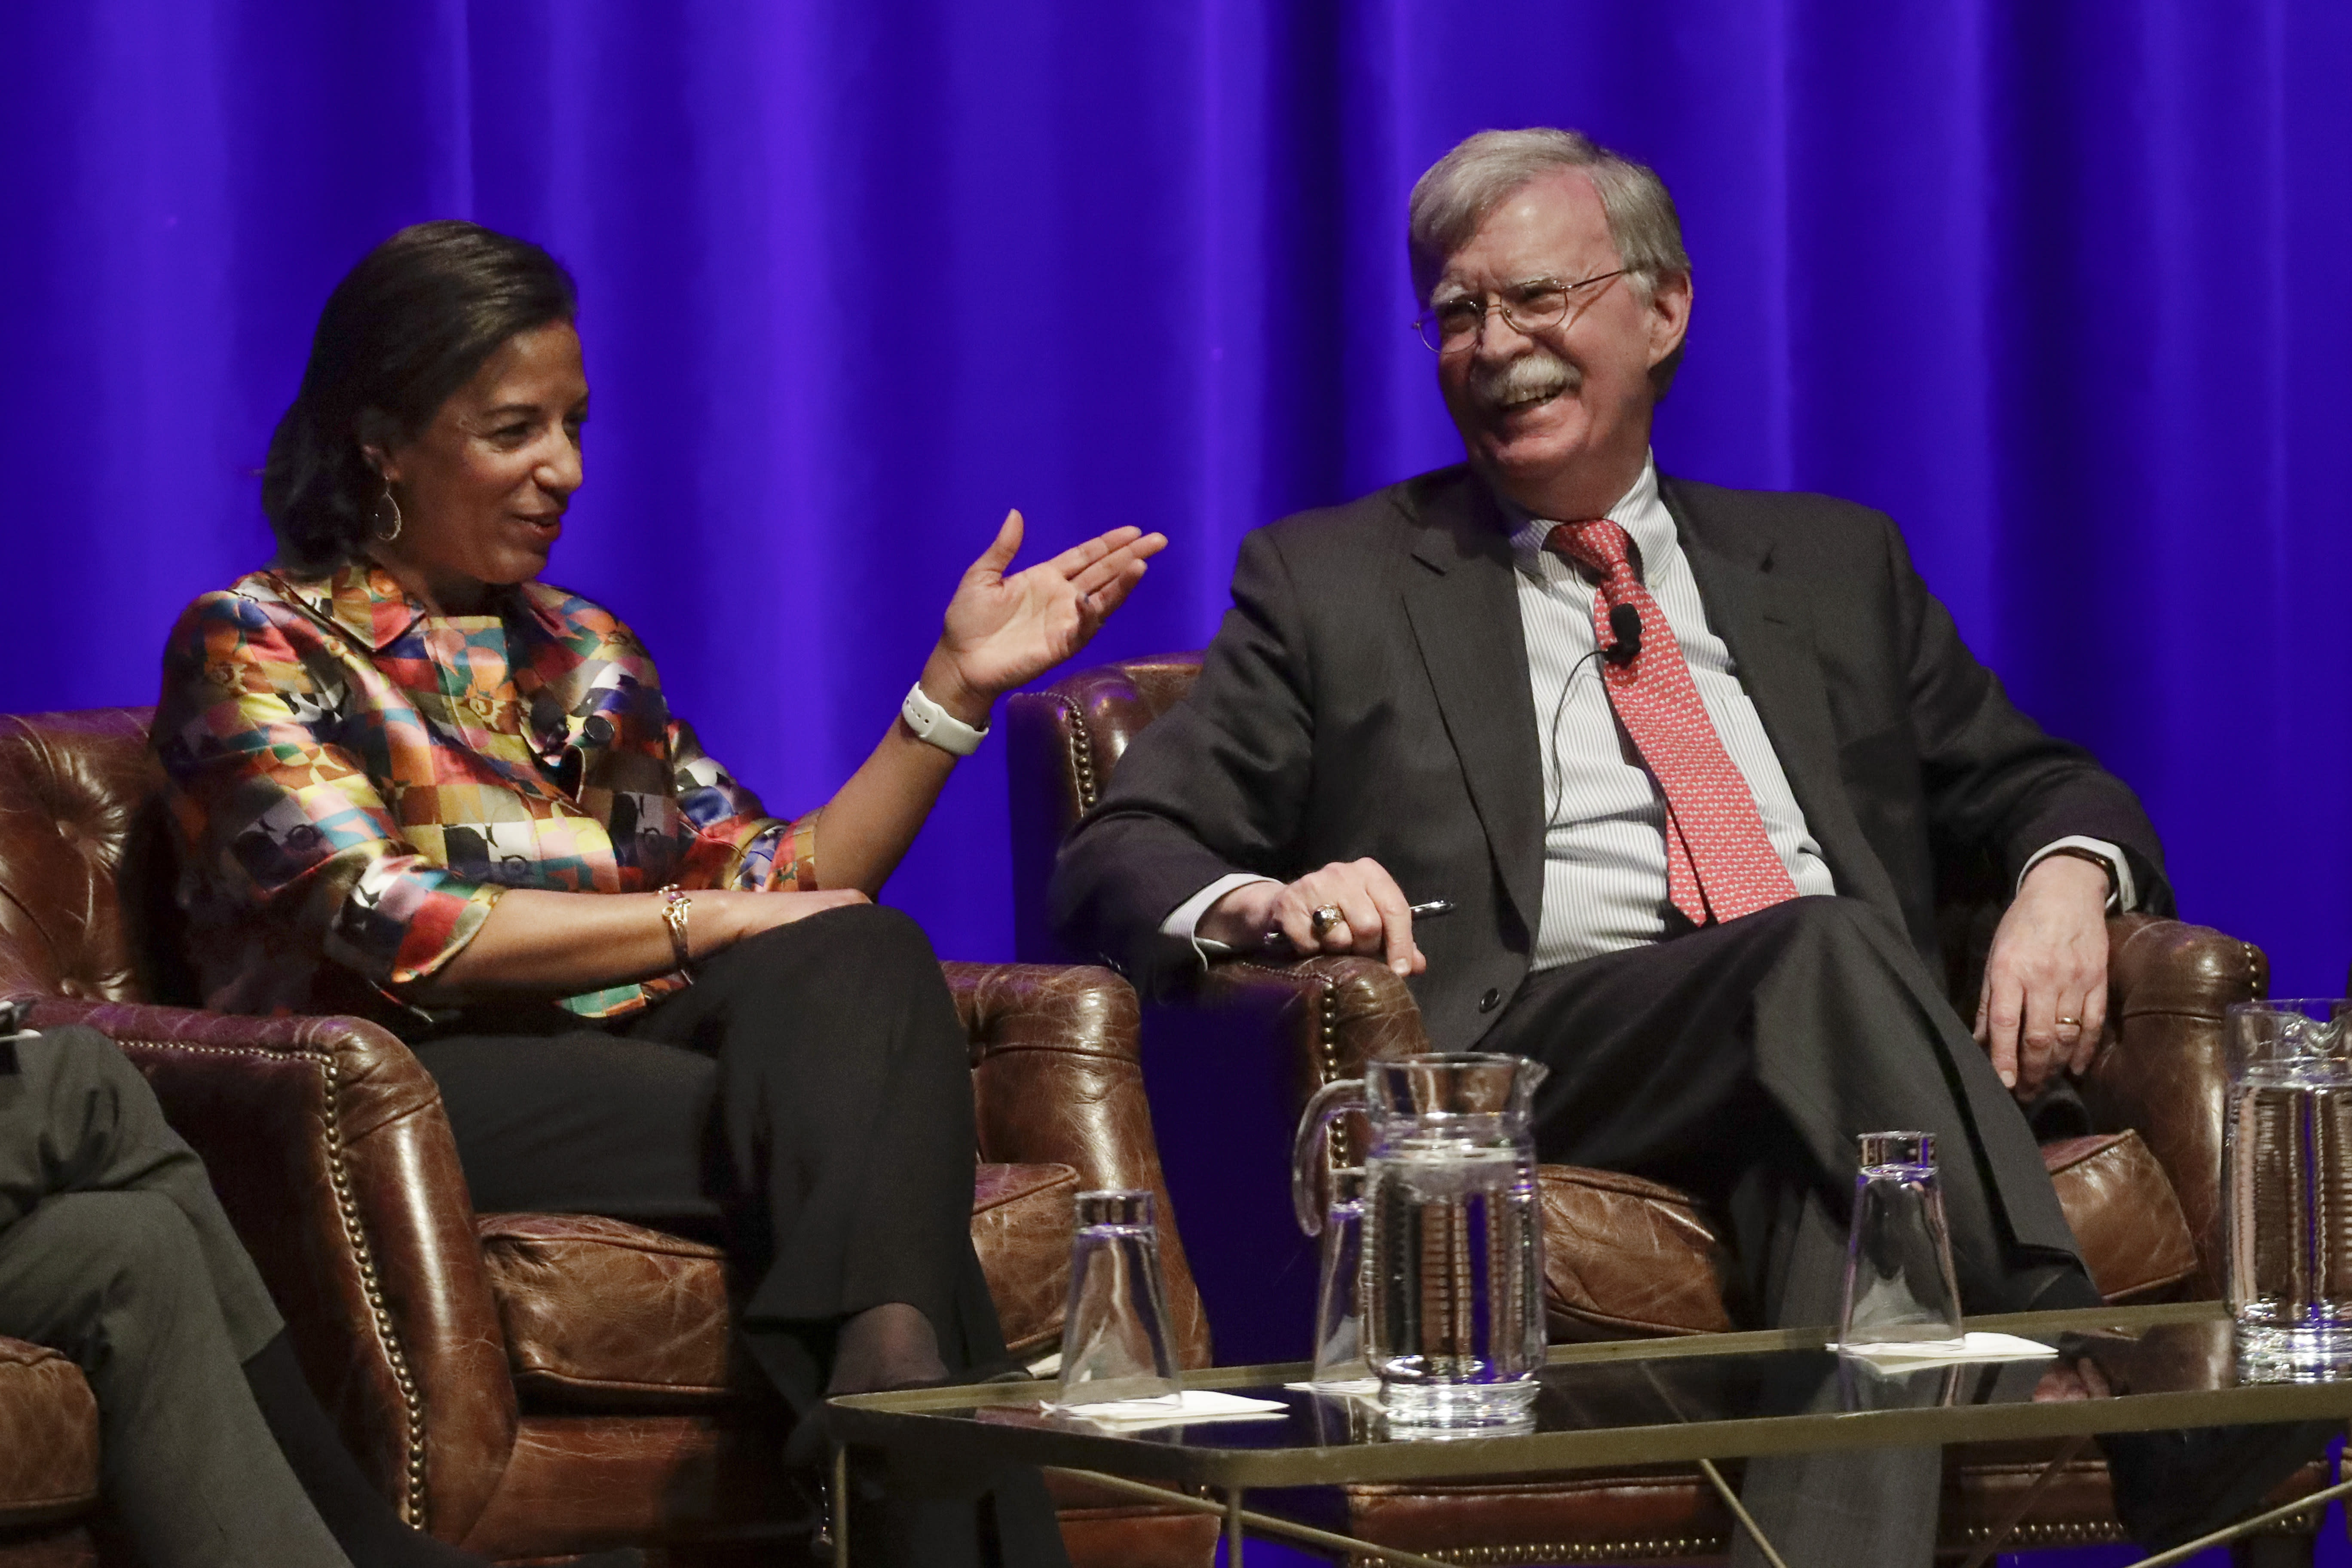 Susan Rice tells John Bolton that withholding testimony is 'inconceivable'